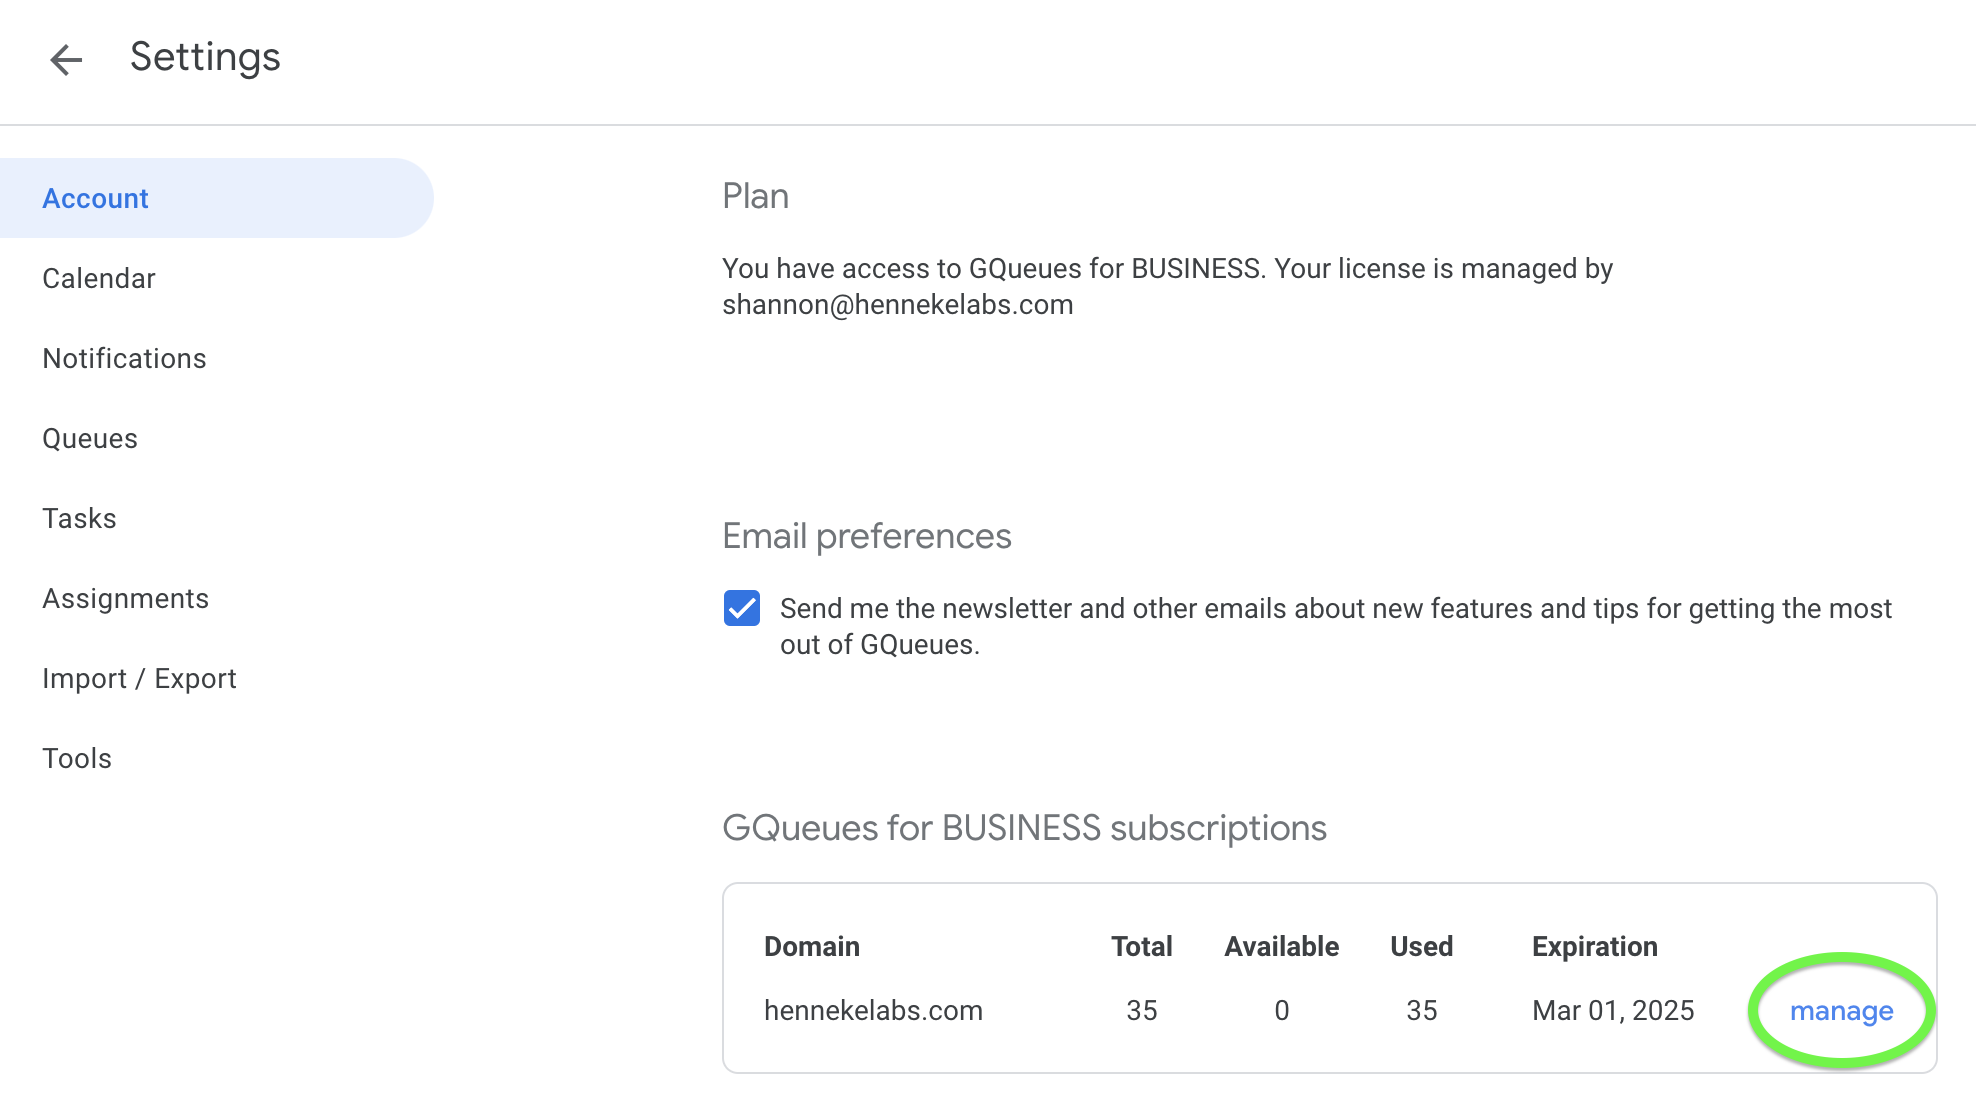 License Admin view of Account tab of GQueues Settings with BUSINESS subscription